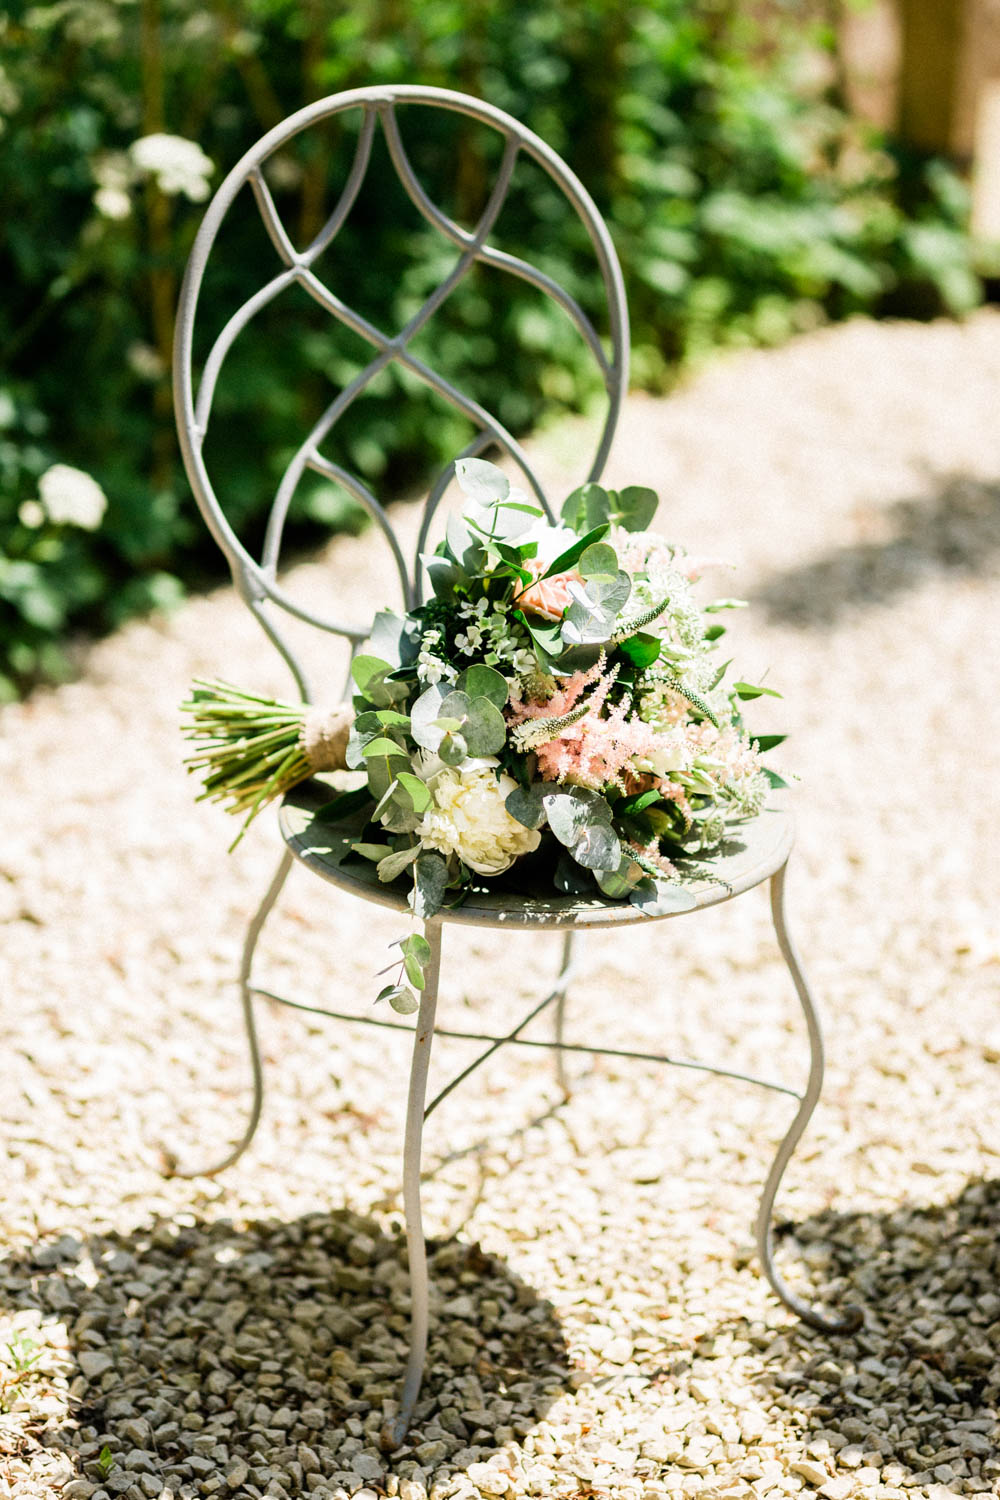 Special-Day-Photography-Cripps-Barn-Cirencester-Gloucester-Barn-Wedding-the-bridal-bouquet-on-a-rustic-chair-in-the-sun.jpg